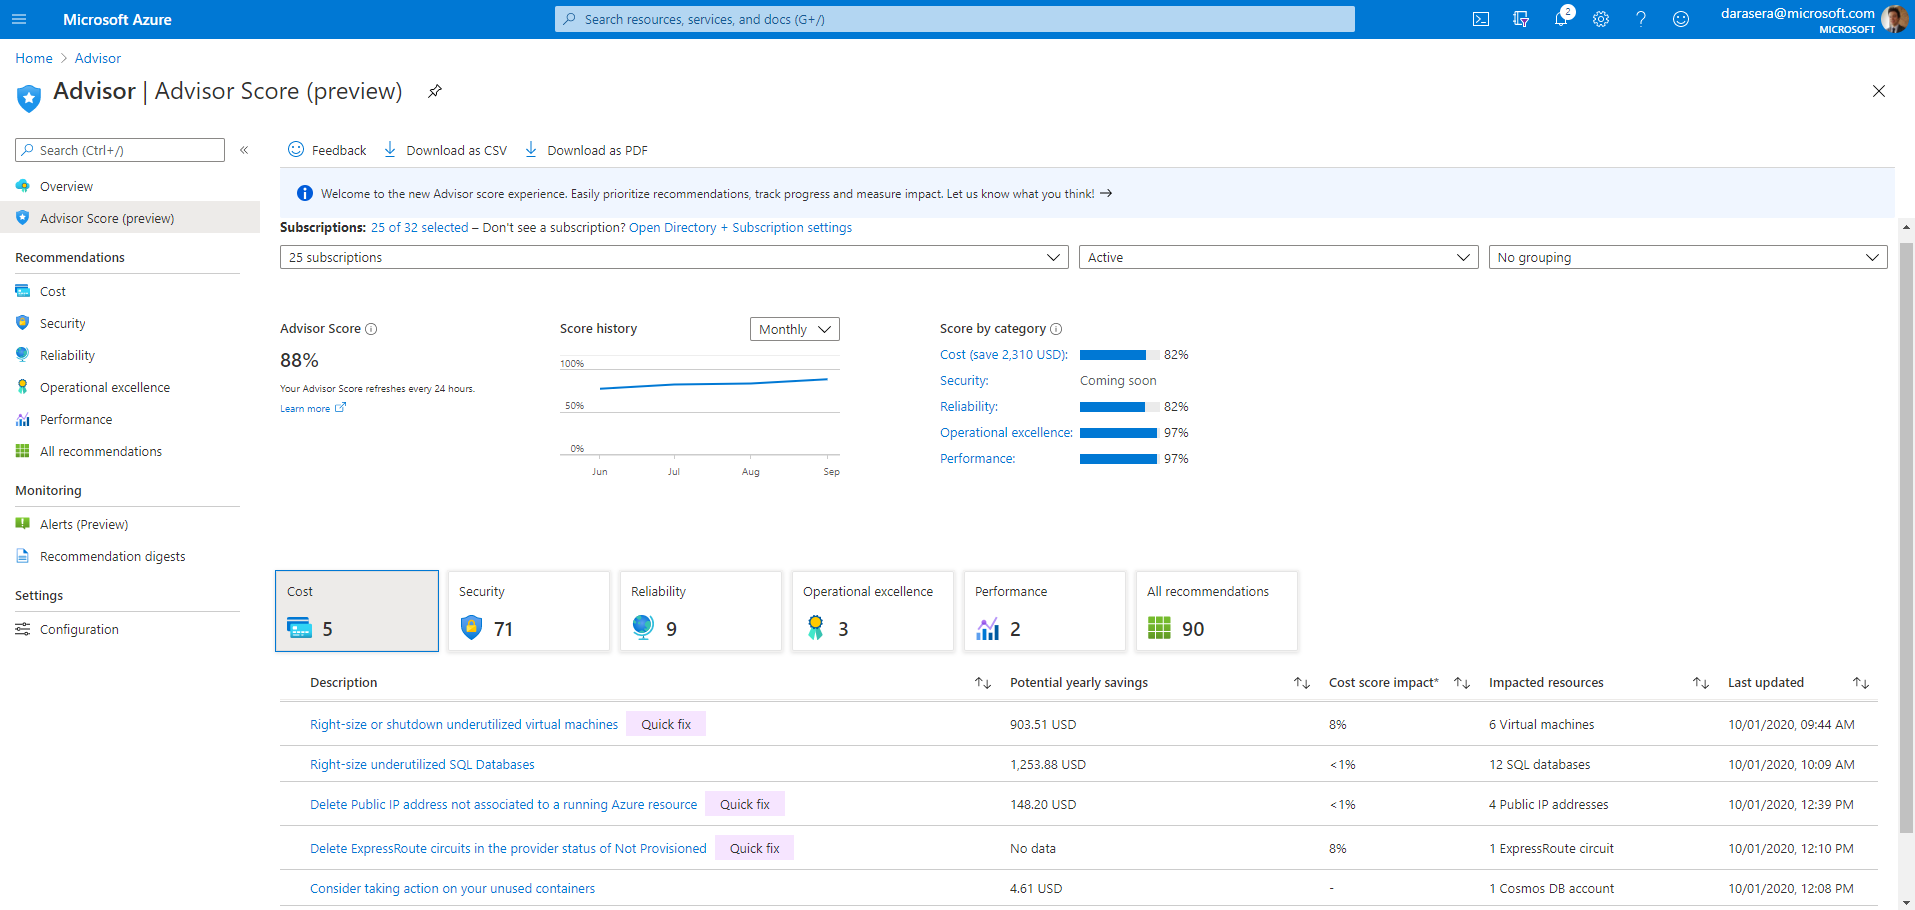 Screenshot of the Azure Advisor Score experience in the Azure portal.